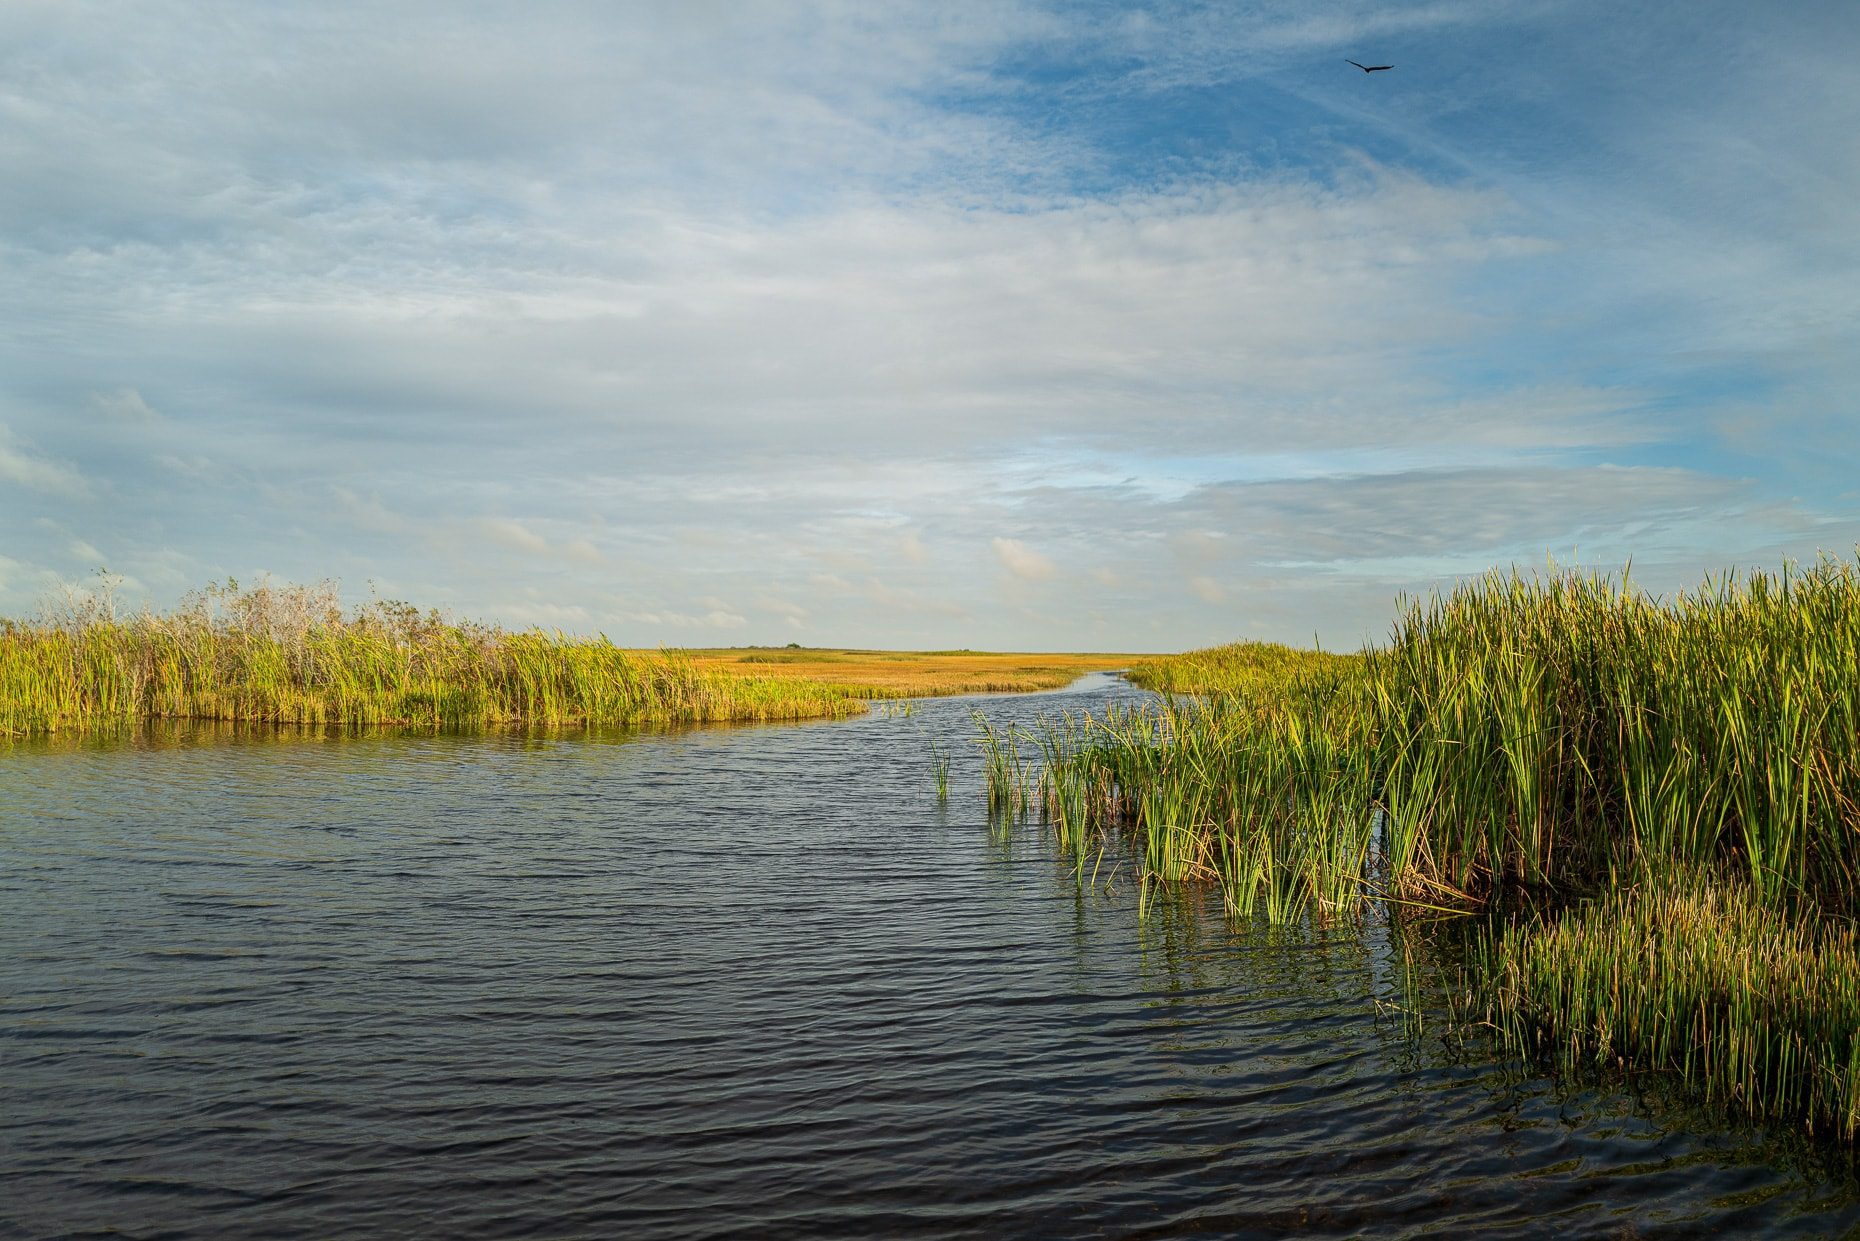 Channel in the Everglades